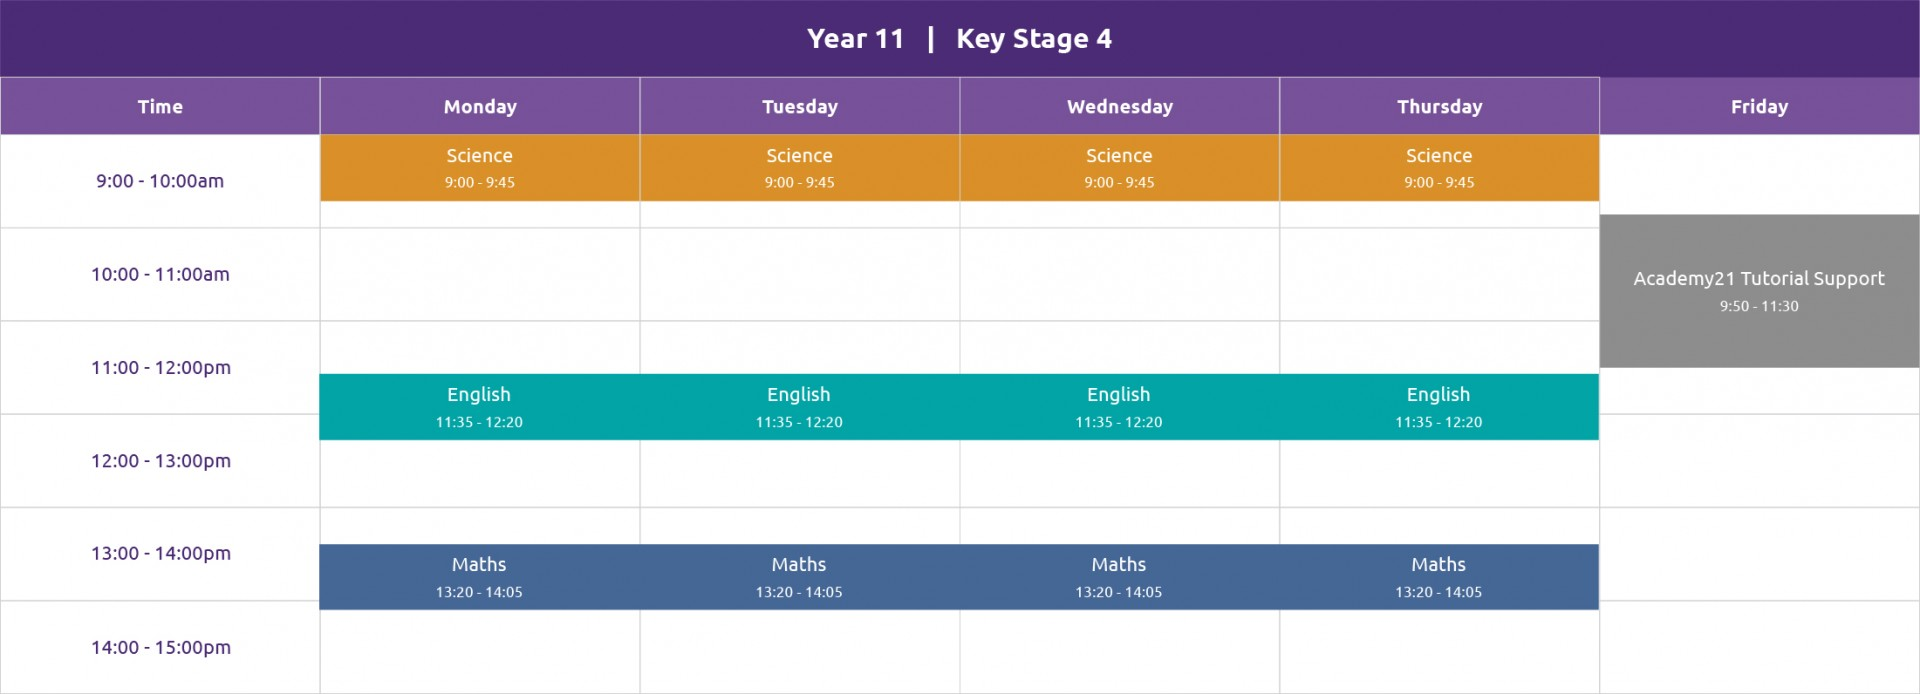 A typical timetable for alternative academic provision for a Year 11 pupil. It features English, Maths and Science Monday to Thursday, and tutorial support on Friday.